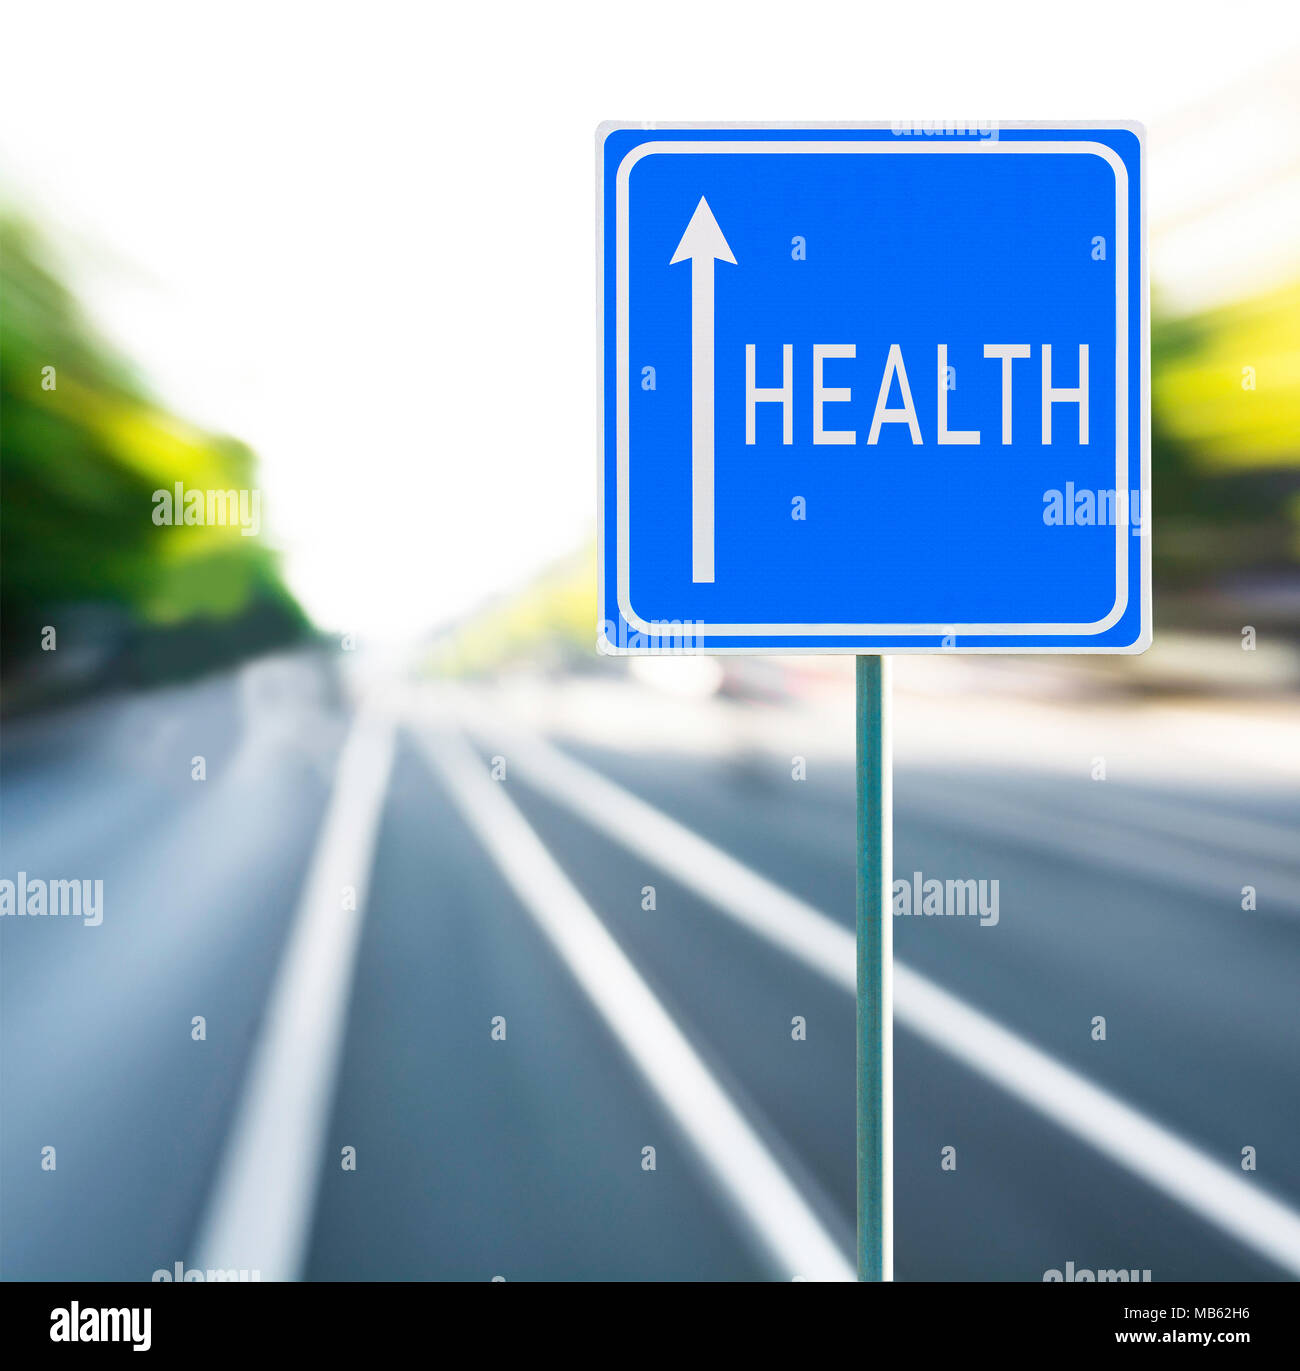 Health motivational phrase on blue road sign with arrow and blurred speedy background. Copy space. - Stock Image